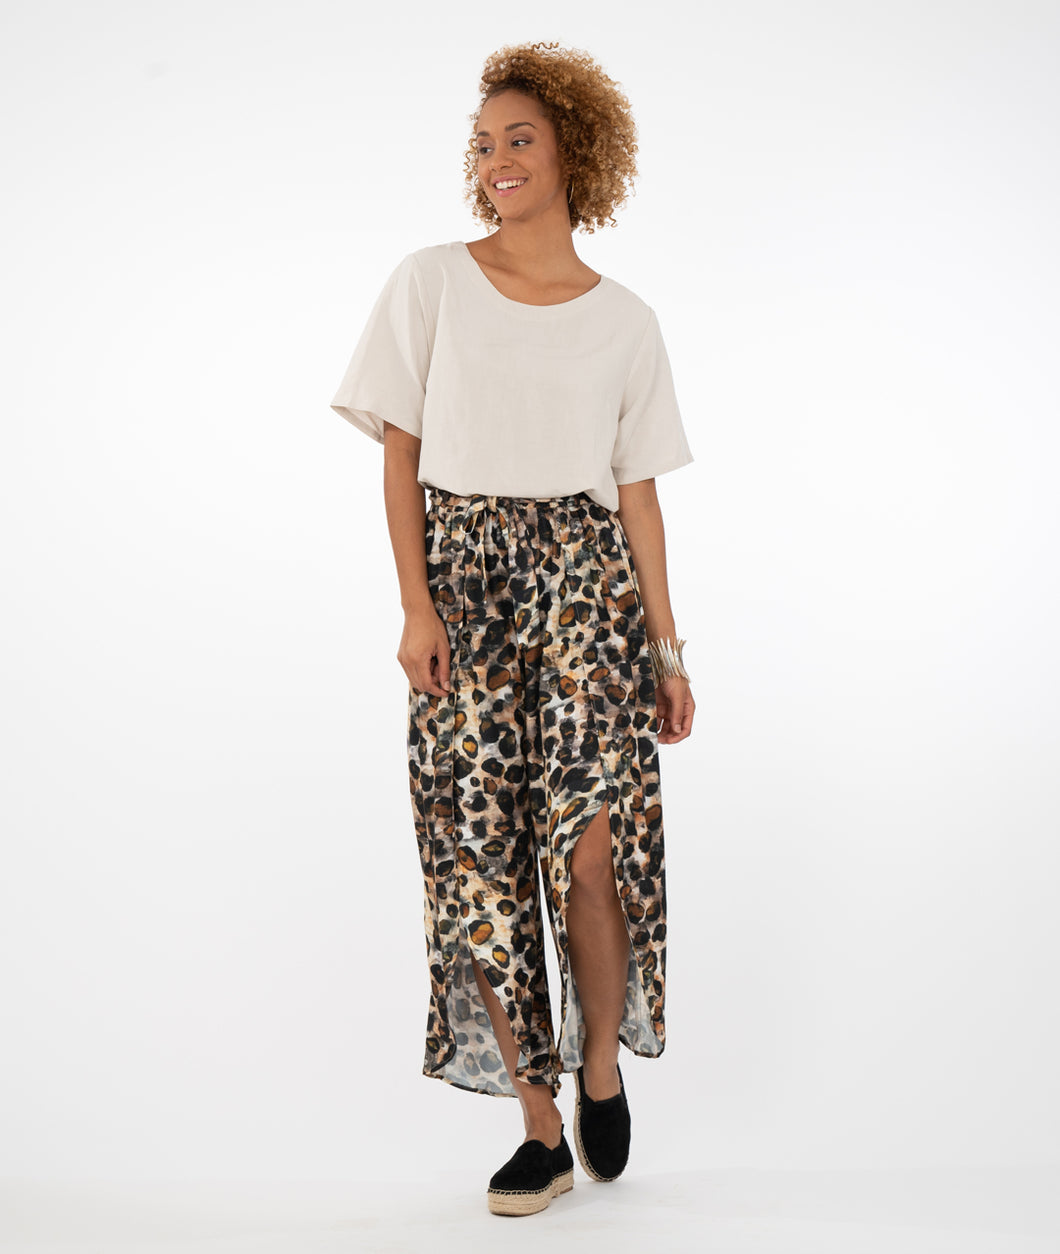 model in a tan top with wide open leg animal print pants